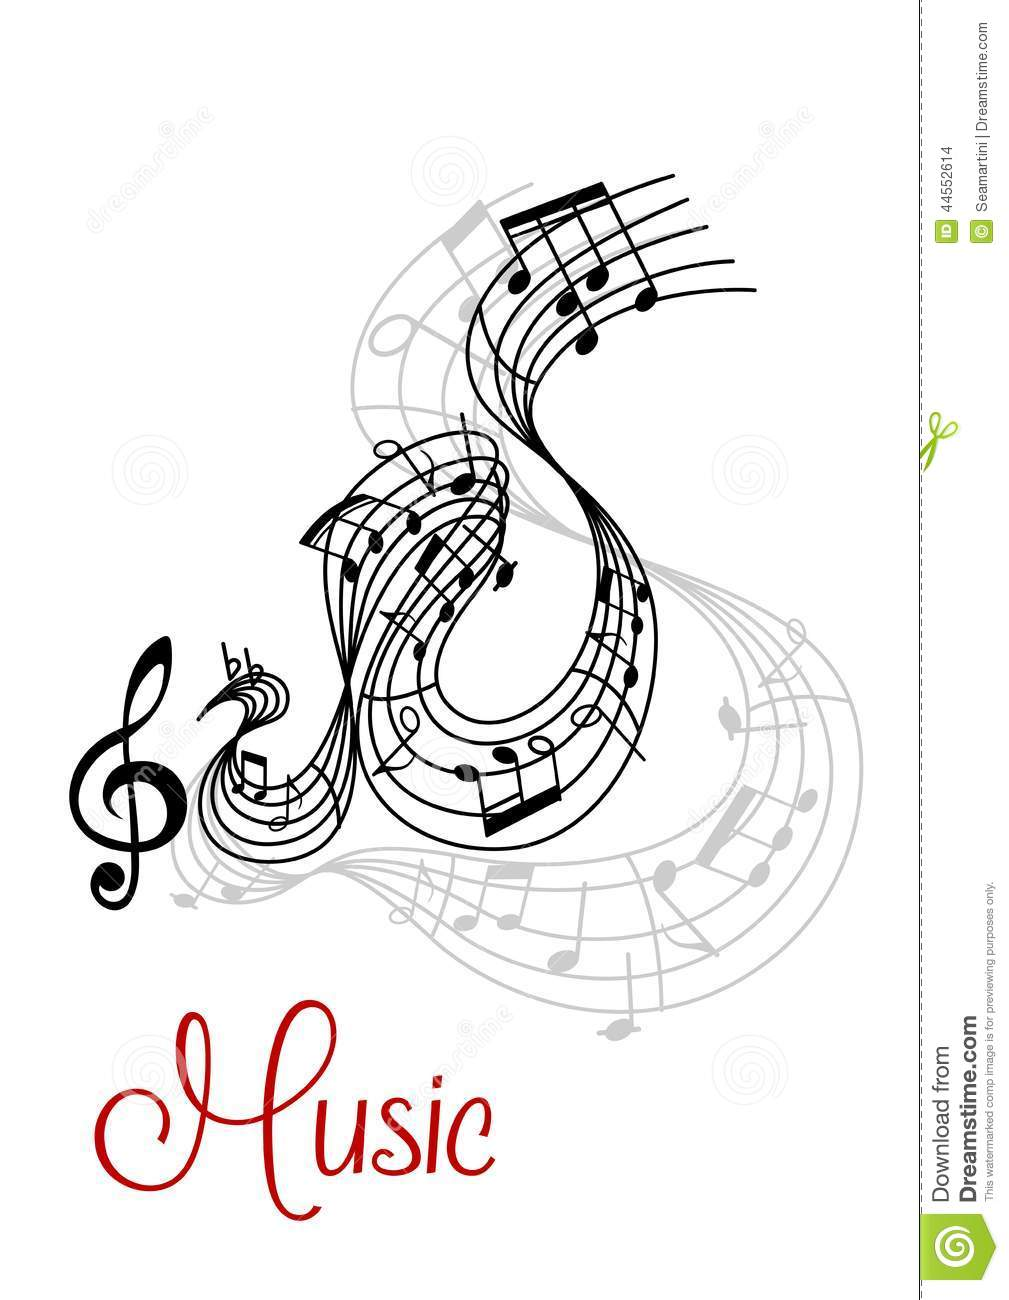 Abstract musical waves composition design stock vector for The craft of musical composition